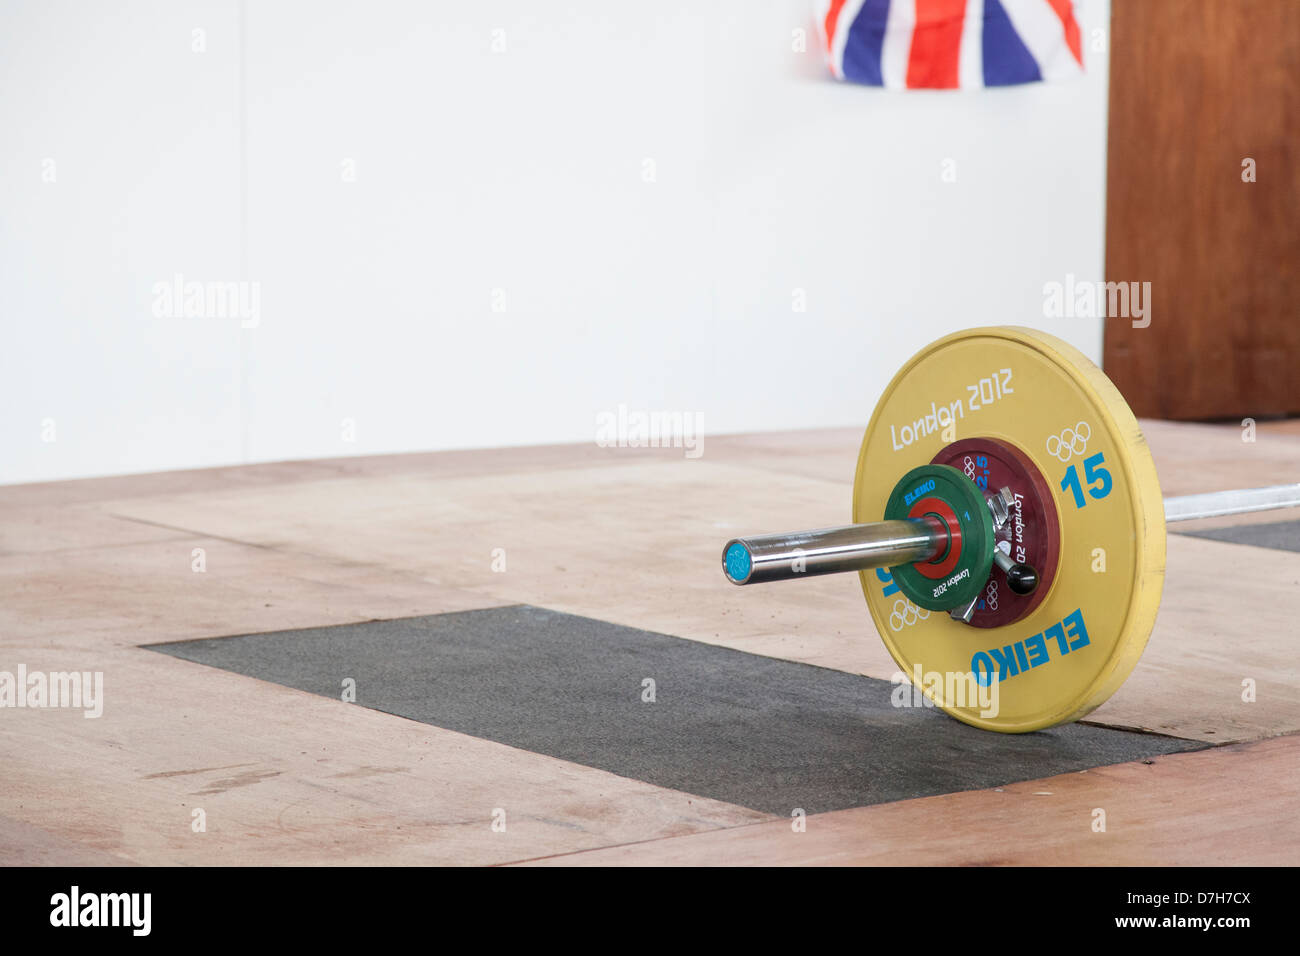 Olympic weight with GB Flag in corner. Olympic weightlifting - Stock Image